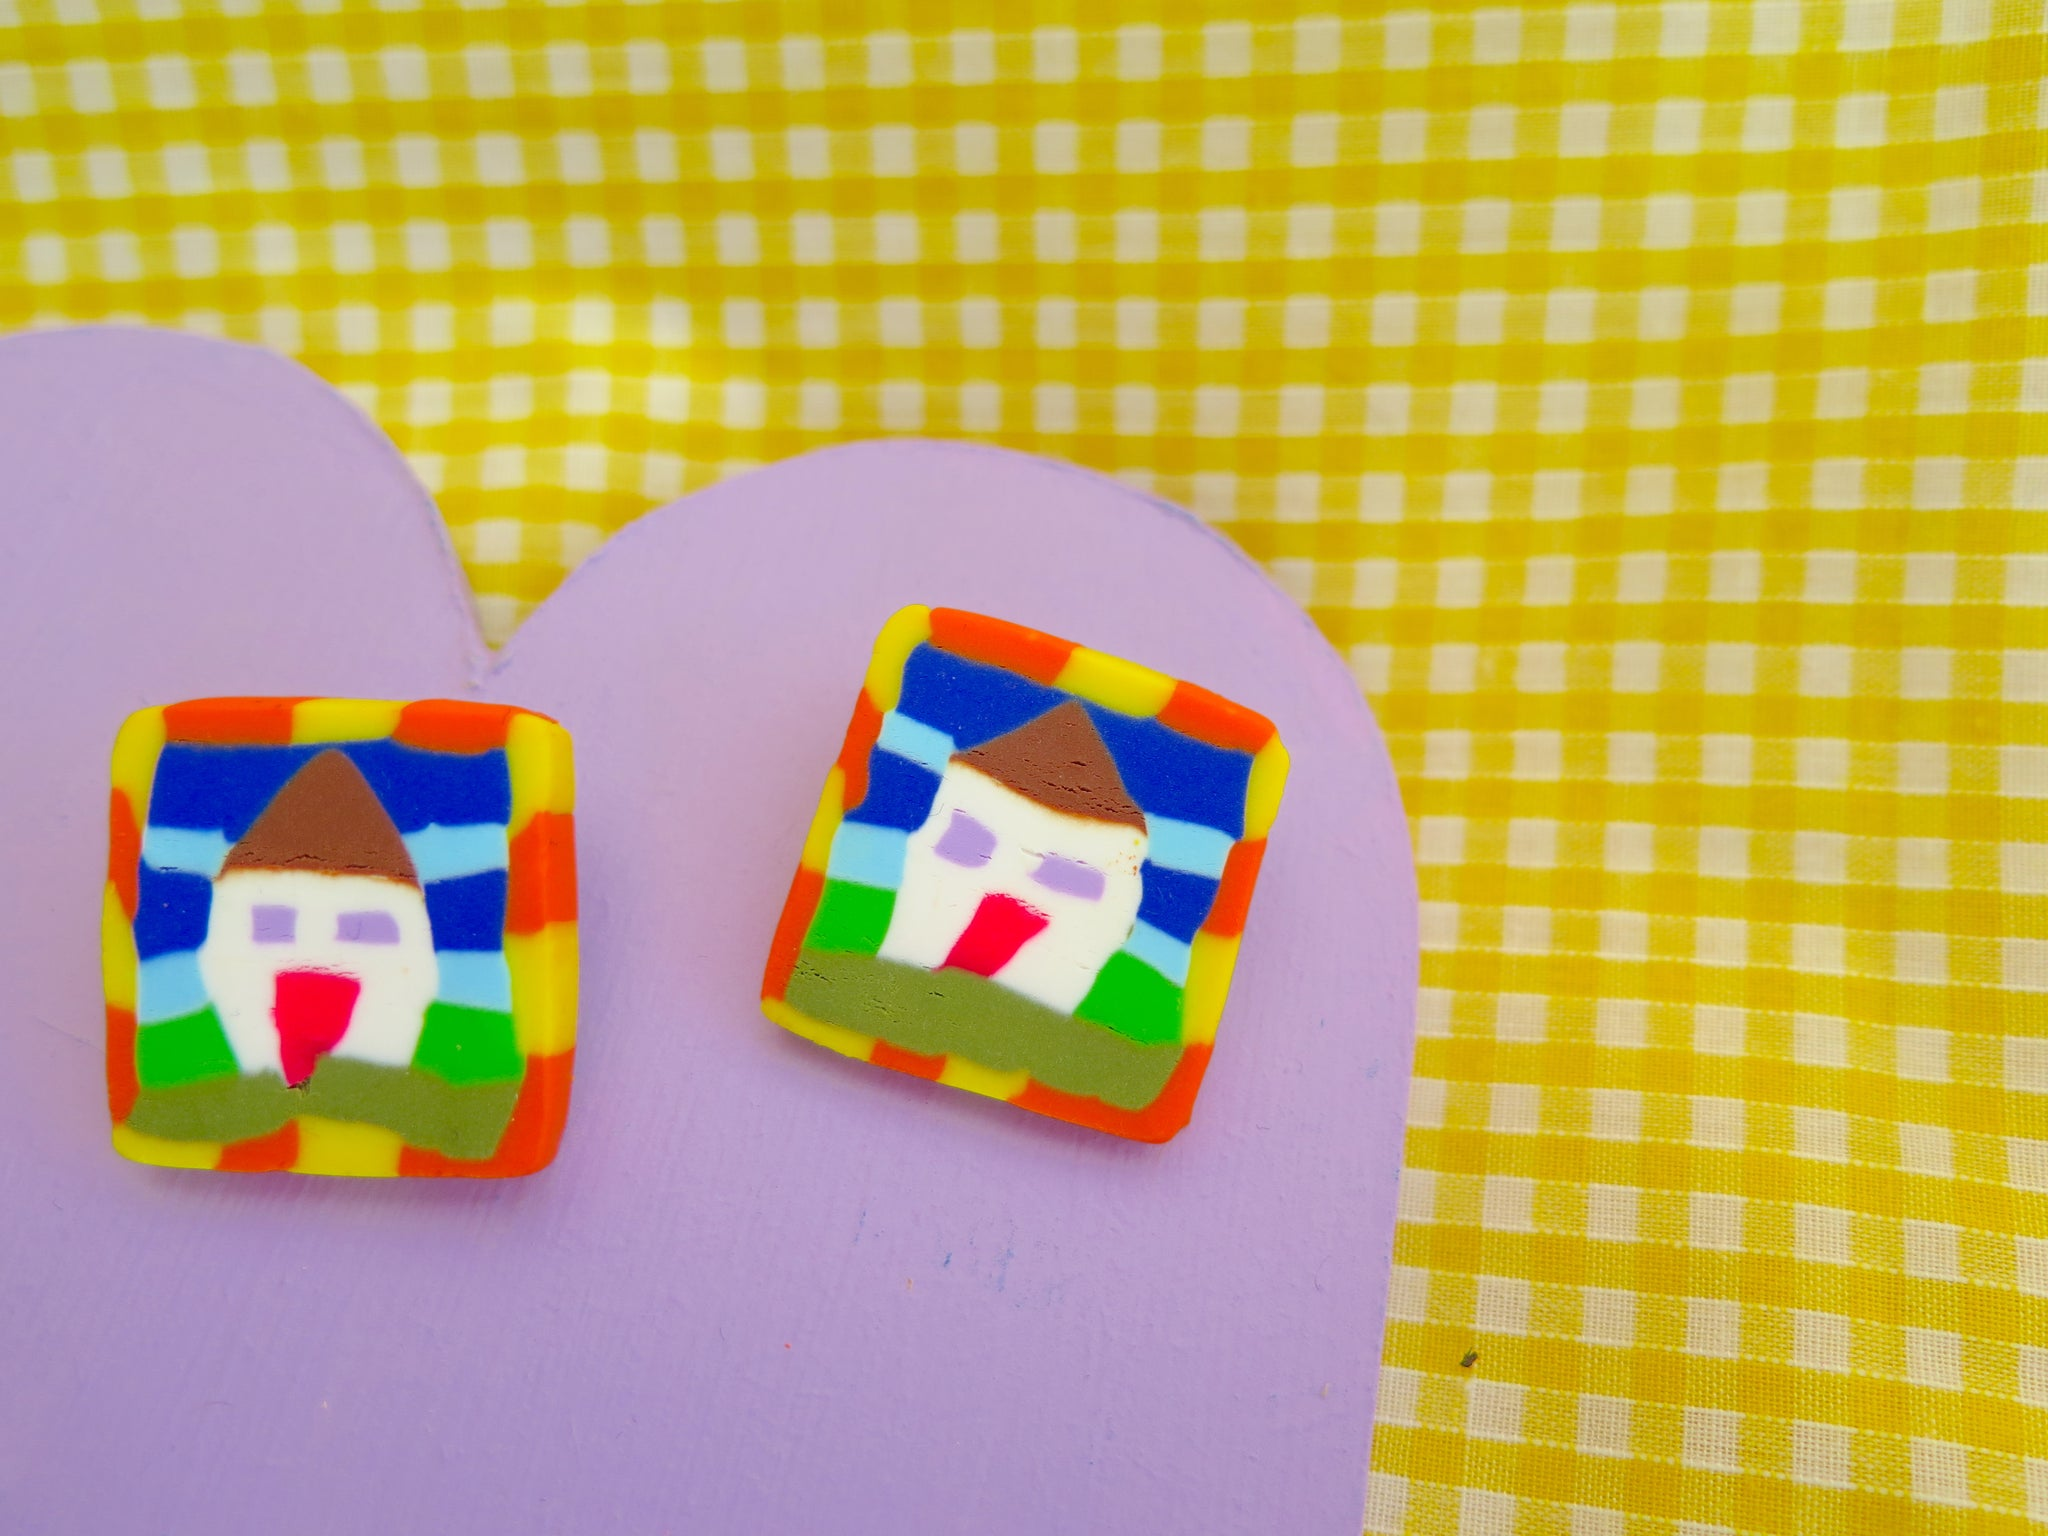 Baked by Lou polymer clay cane studs, home sweet home! Available to buy as charms, studs, brooch or hoops